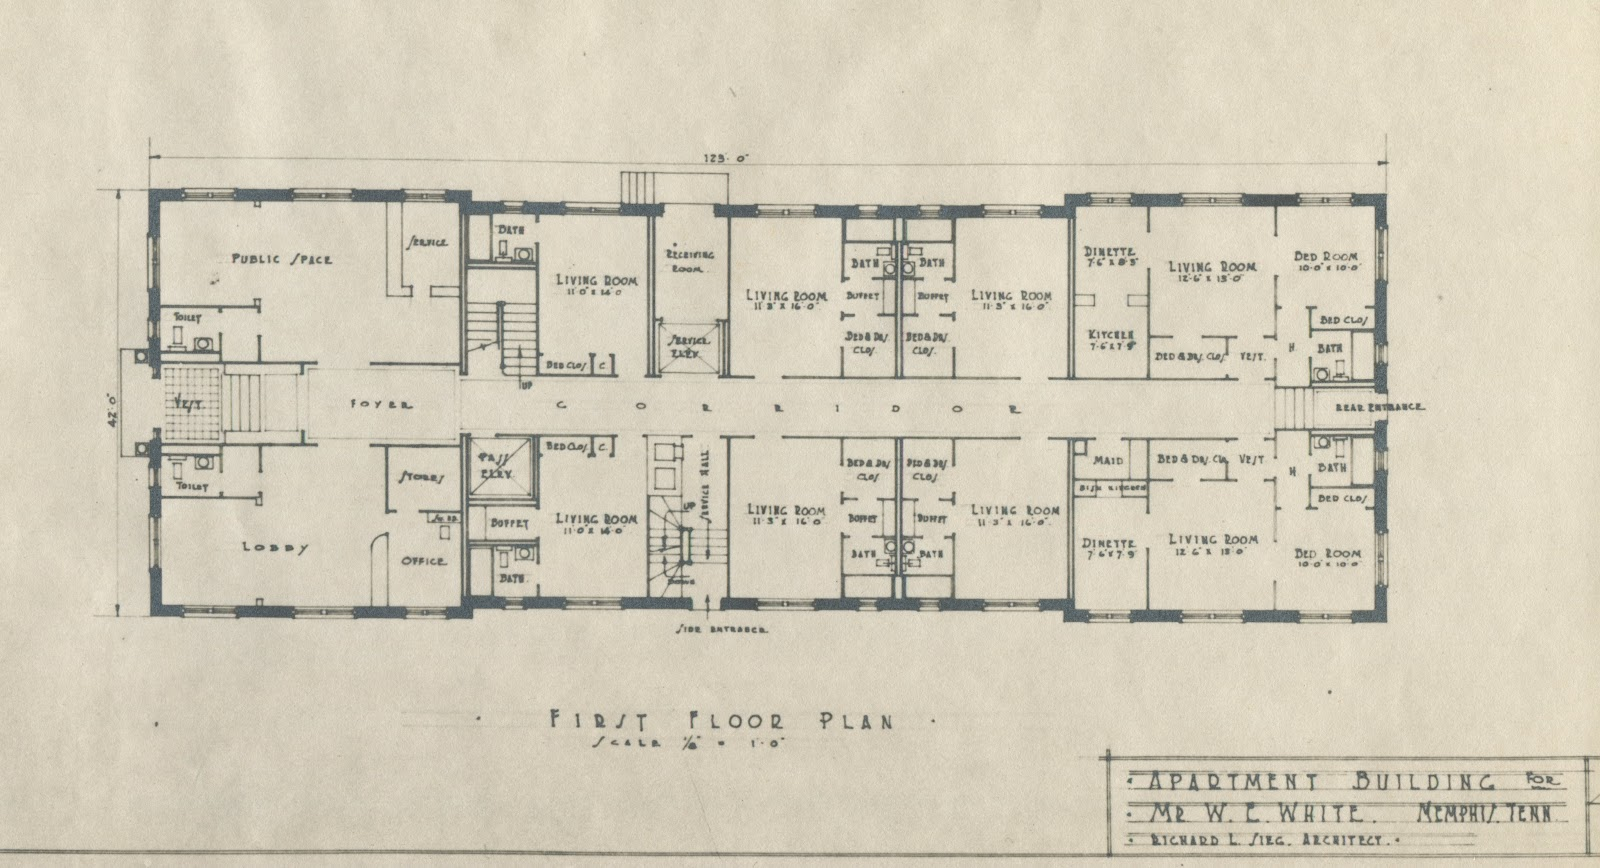 Apartment building plans 6 units images for Apartment building plans 6 units